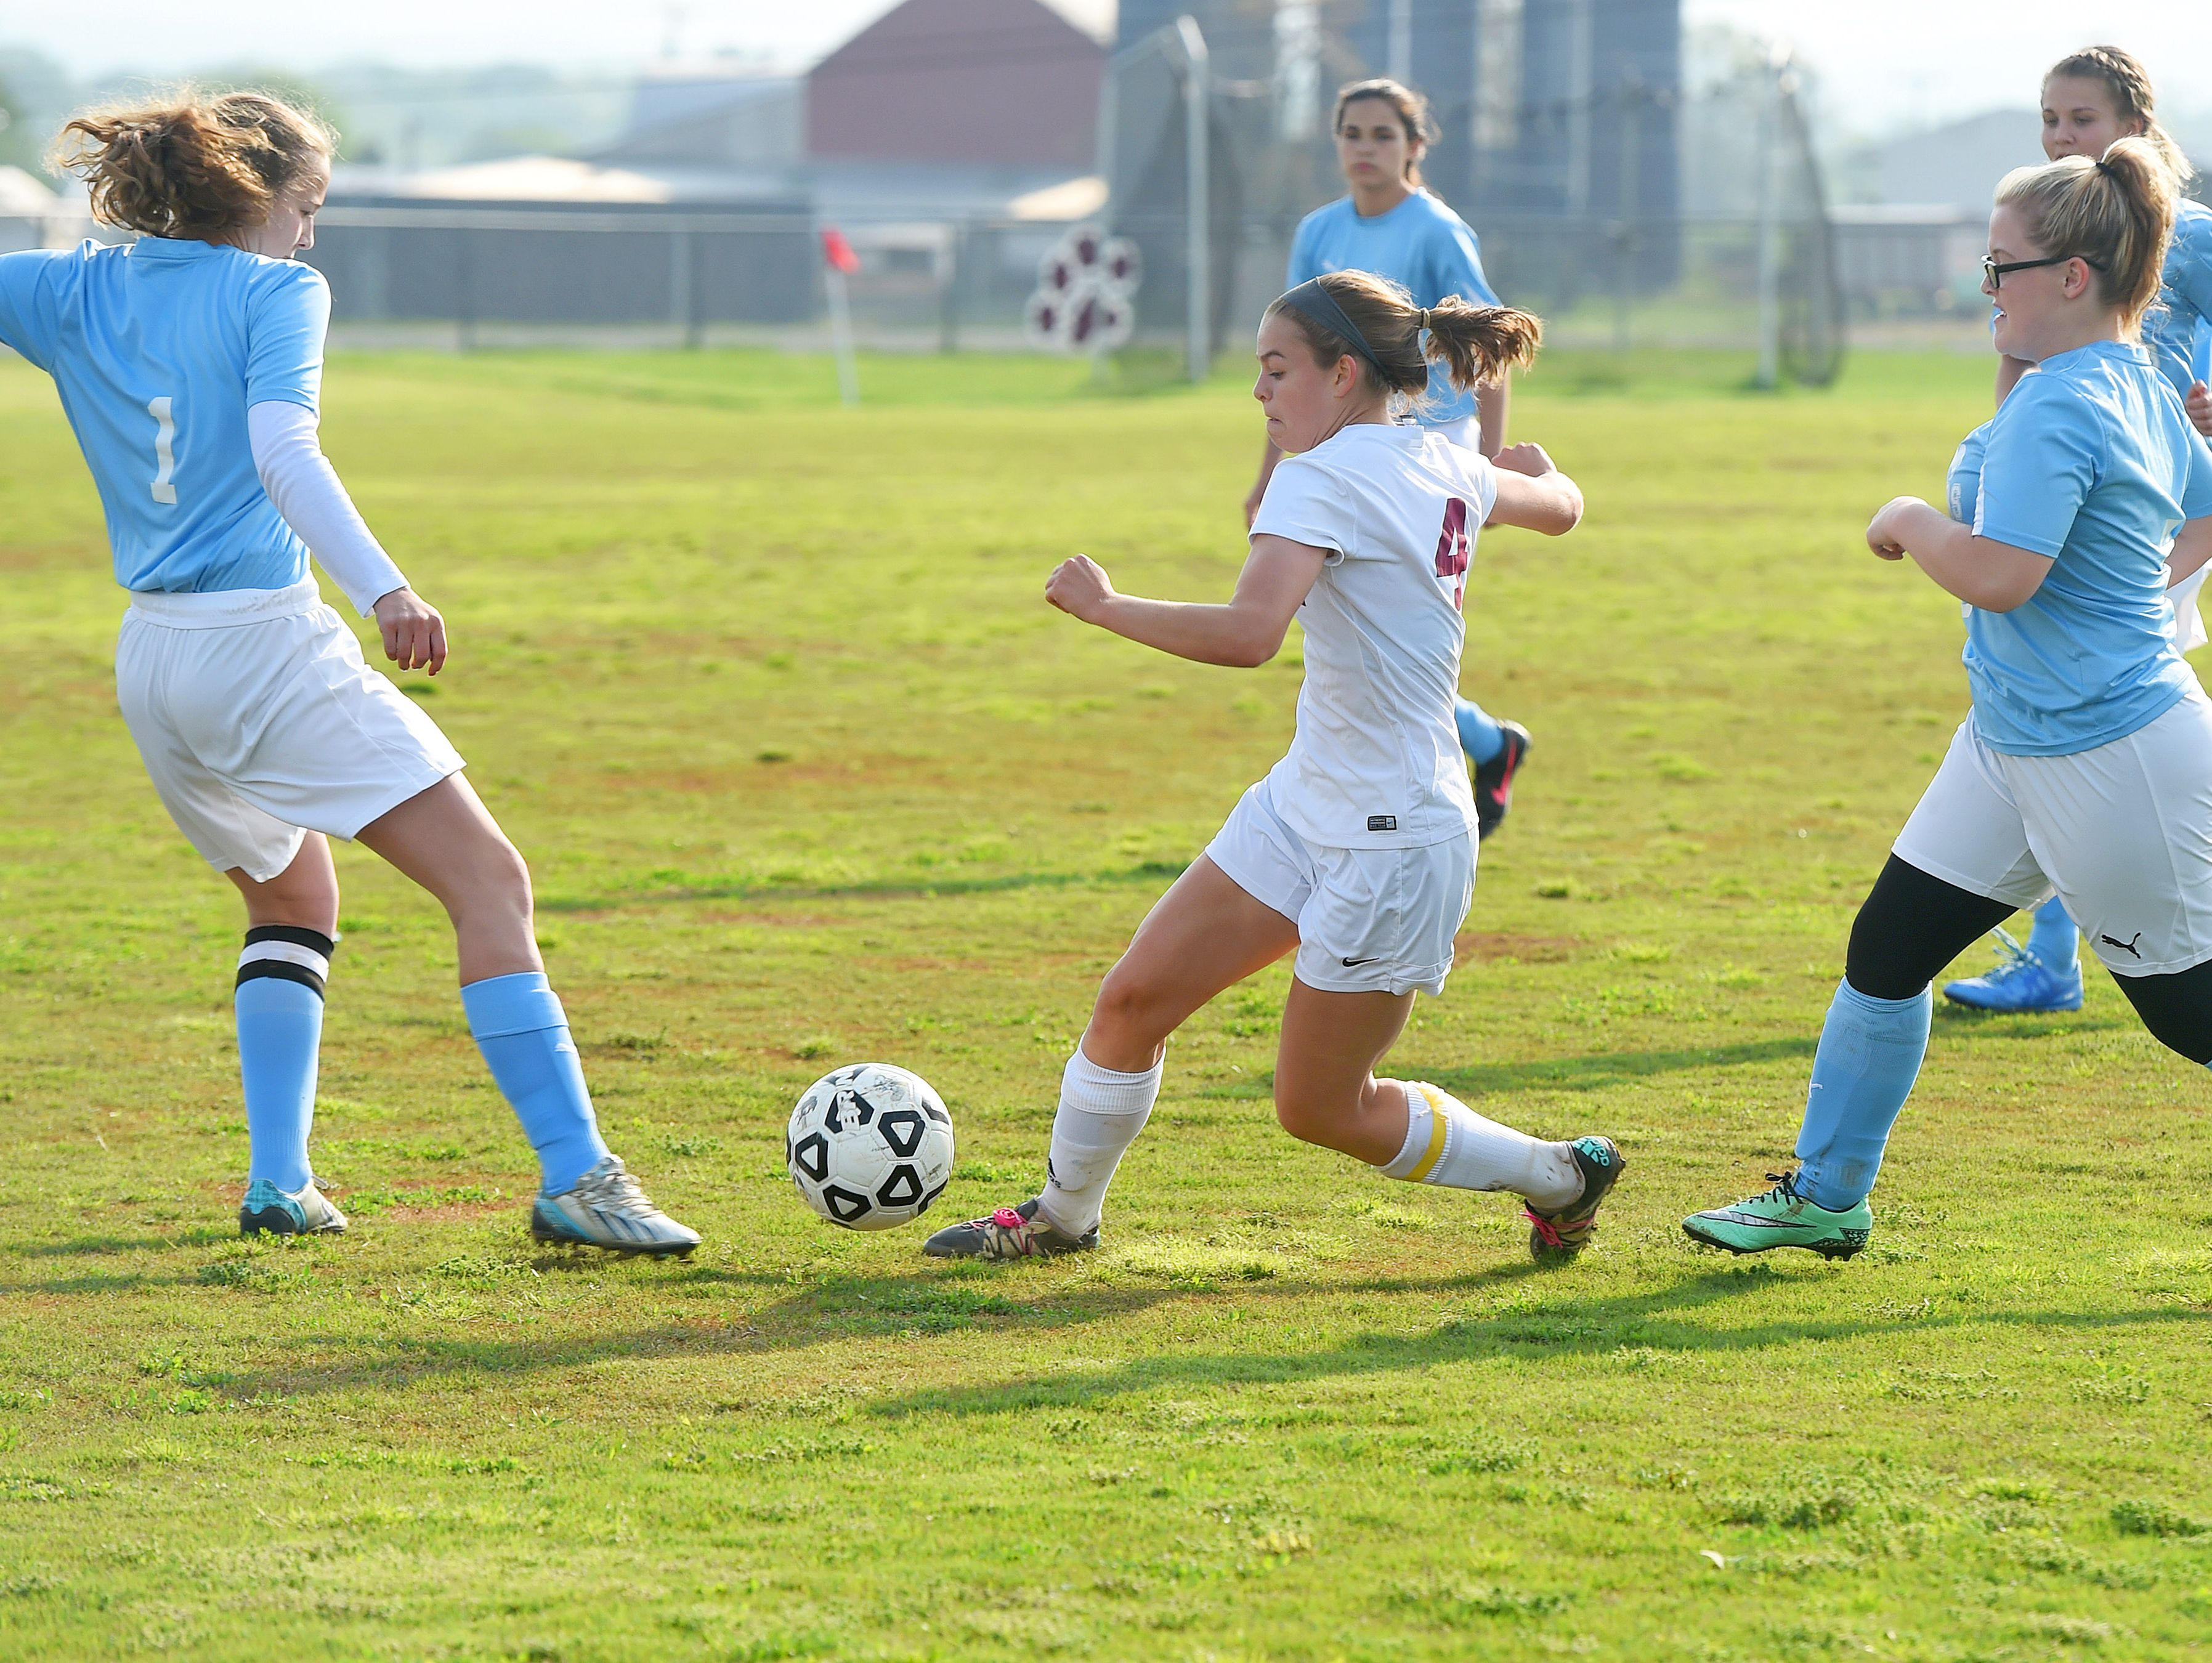 Stuarts Draft's Rachel Sauder (center) battles Page County's Brianna Good for control of the ball and will kick it for a goal during a soccer match played jn Stuarts Draft onTuesday, May 10, 2016.